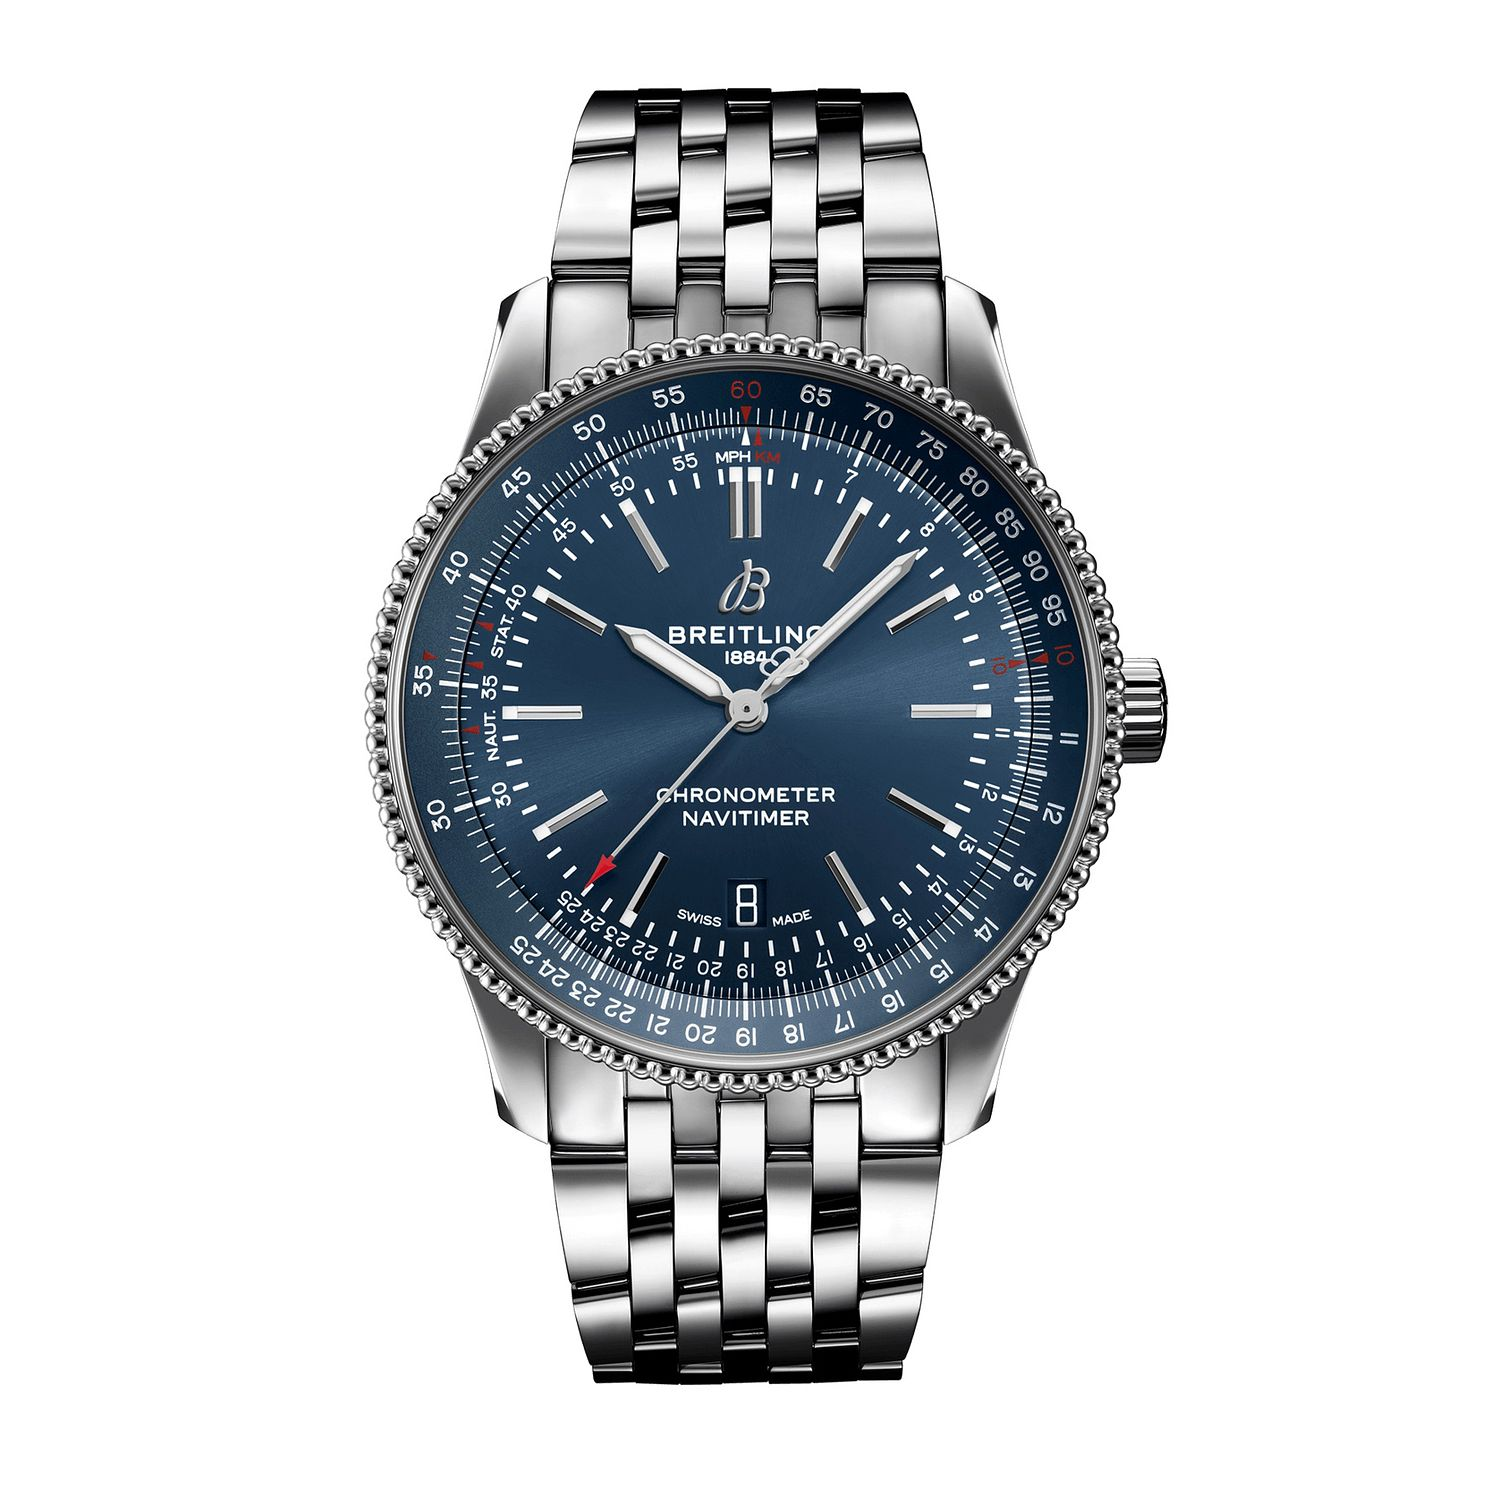 Breitling Navitimer Automatic 41 Blue Steel Bracelet Watch - Product number 1157965